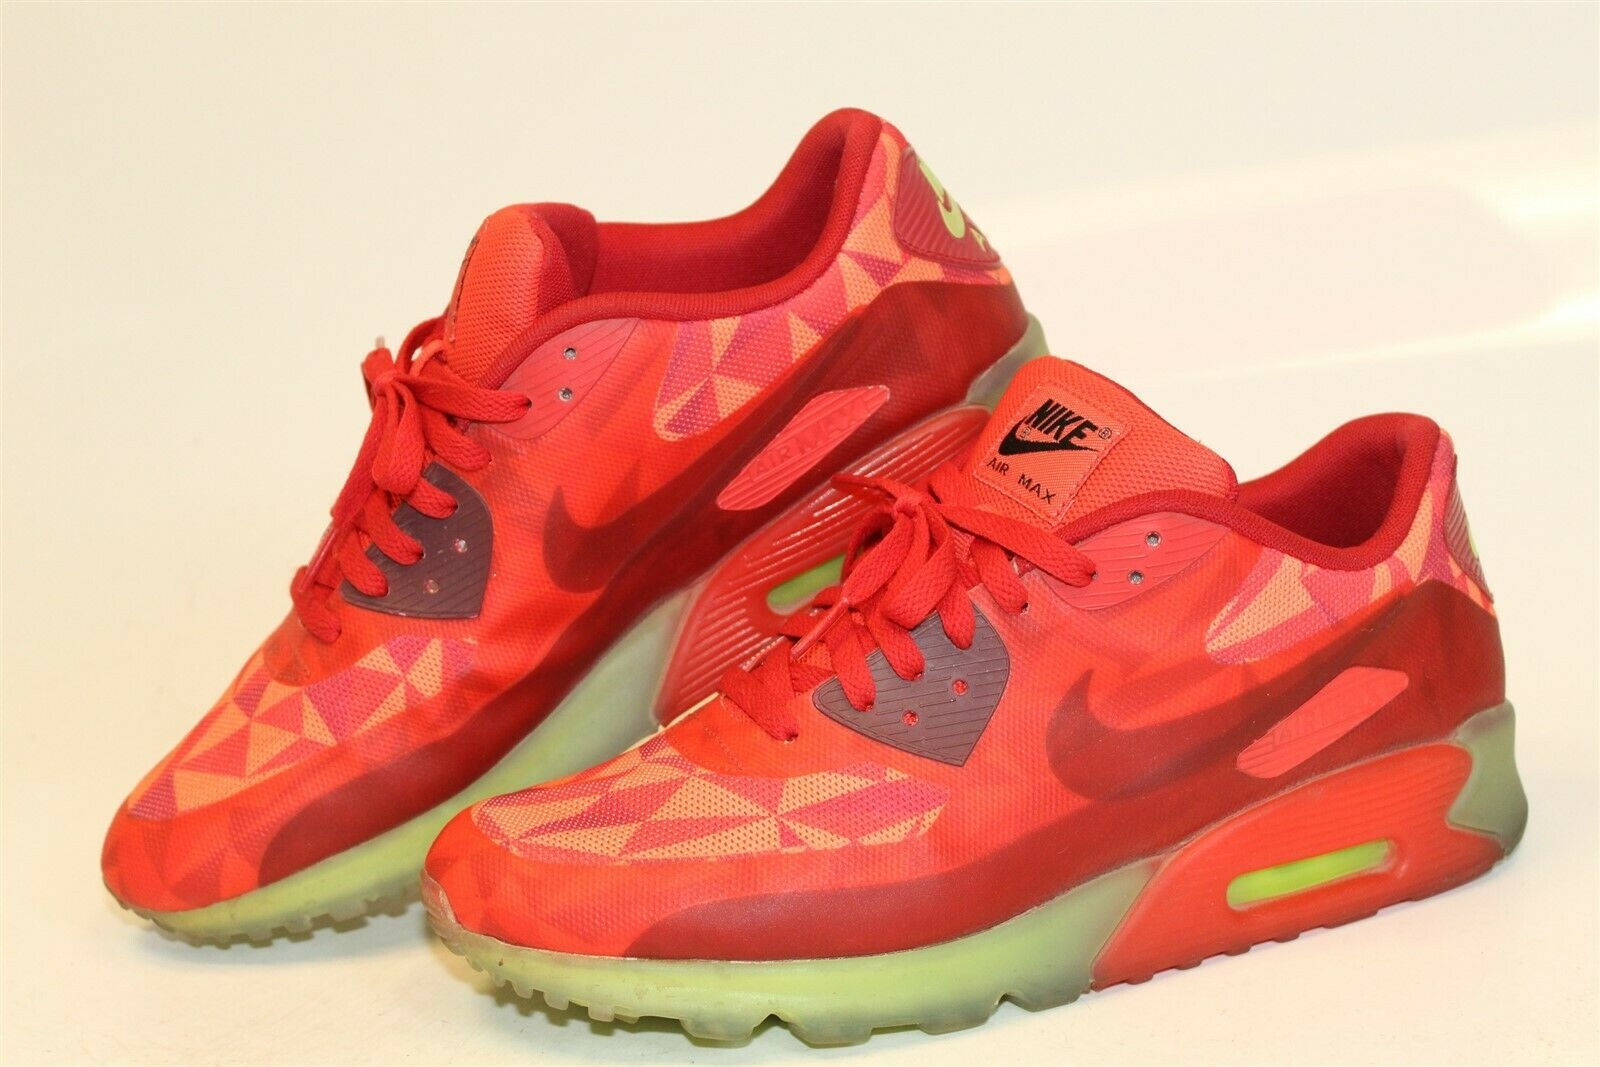 Hacer bien cosecha Aprobación  Nike Air Max 90 Ice Gym Red Le Size 11.5 Deadstock for sale online | eBay